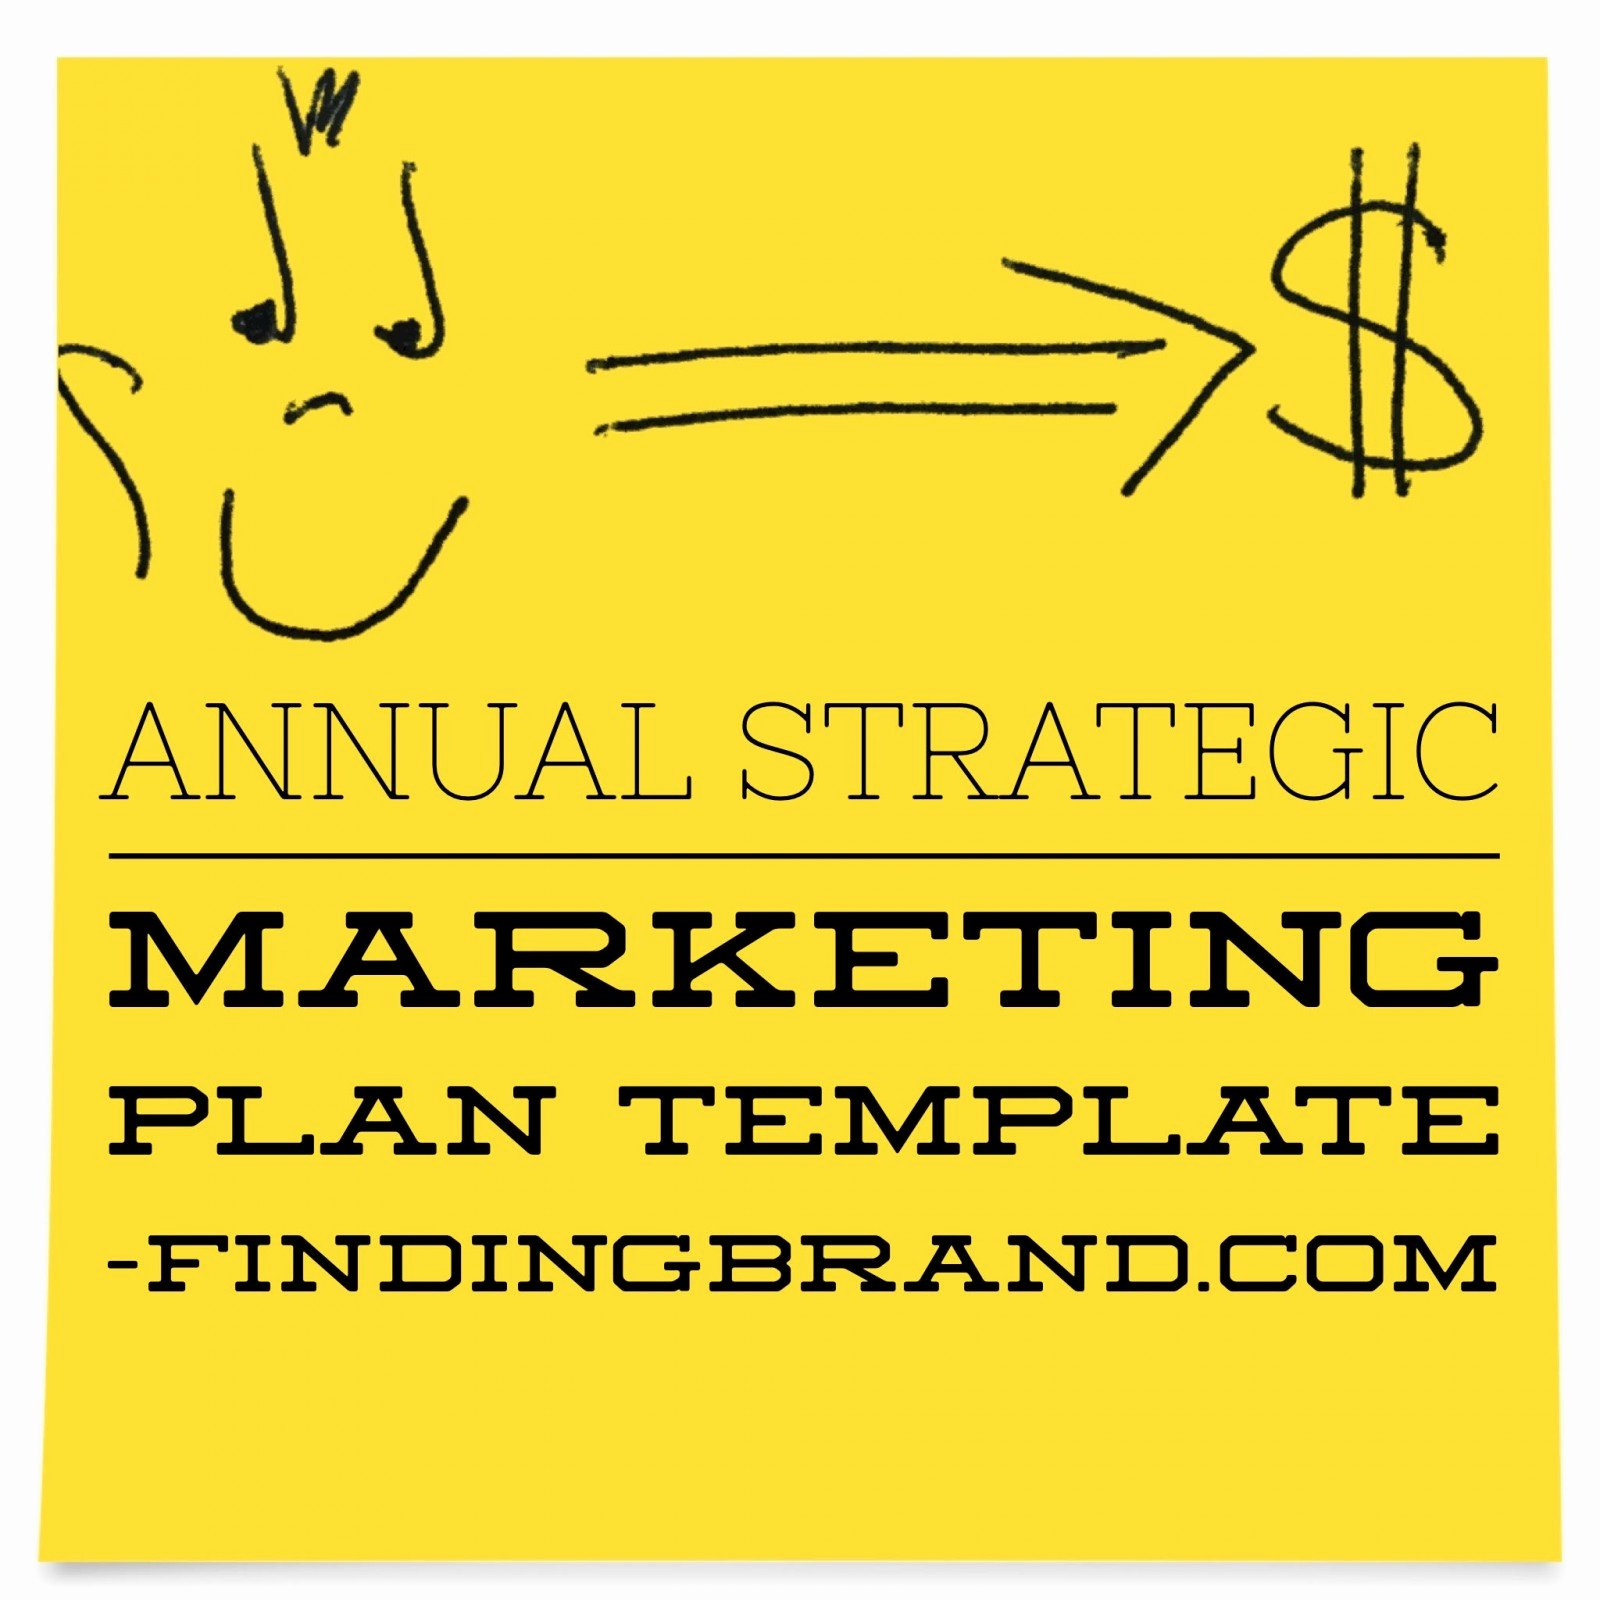 Yearly Marketing Plan Template Fresh Annual Strategic Marketing Plan Template Paradux Media